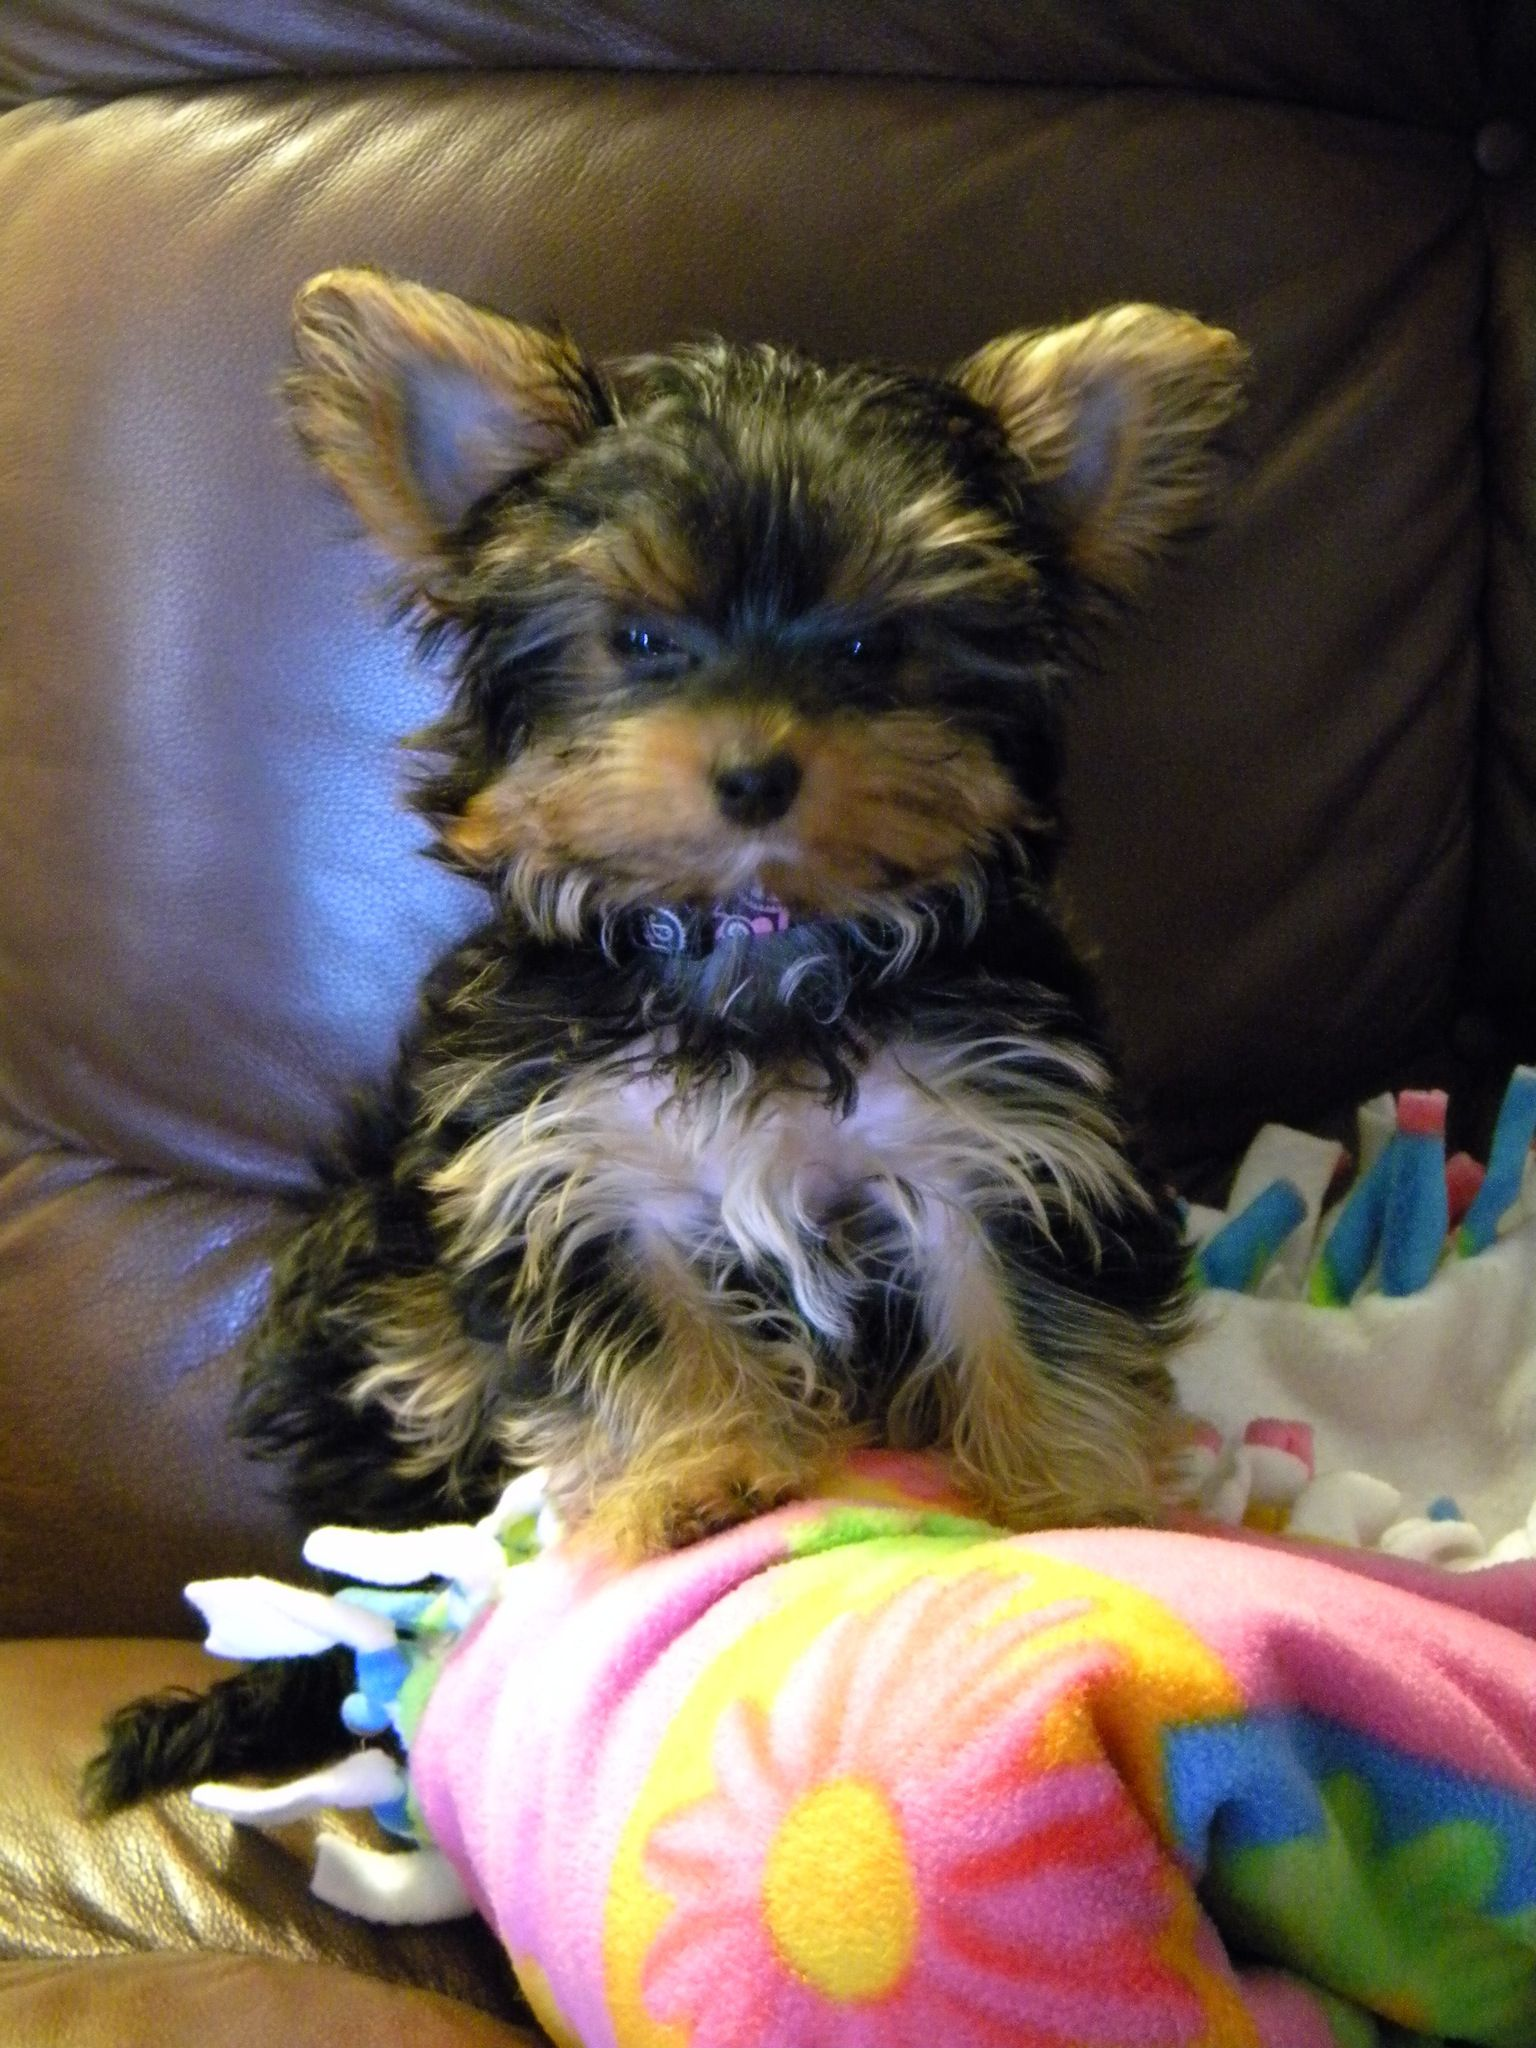 Pin By Virginia Crunick On Yorkshire Terrier Yorkshire Terrier Yorkie Dogs Yorkshire Terrier Puppies